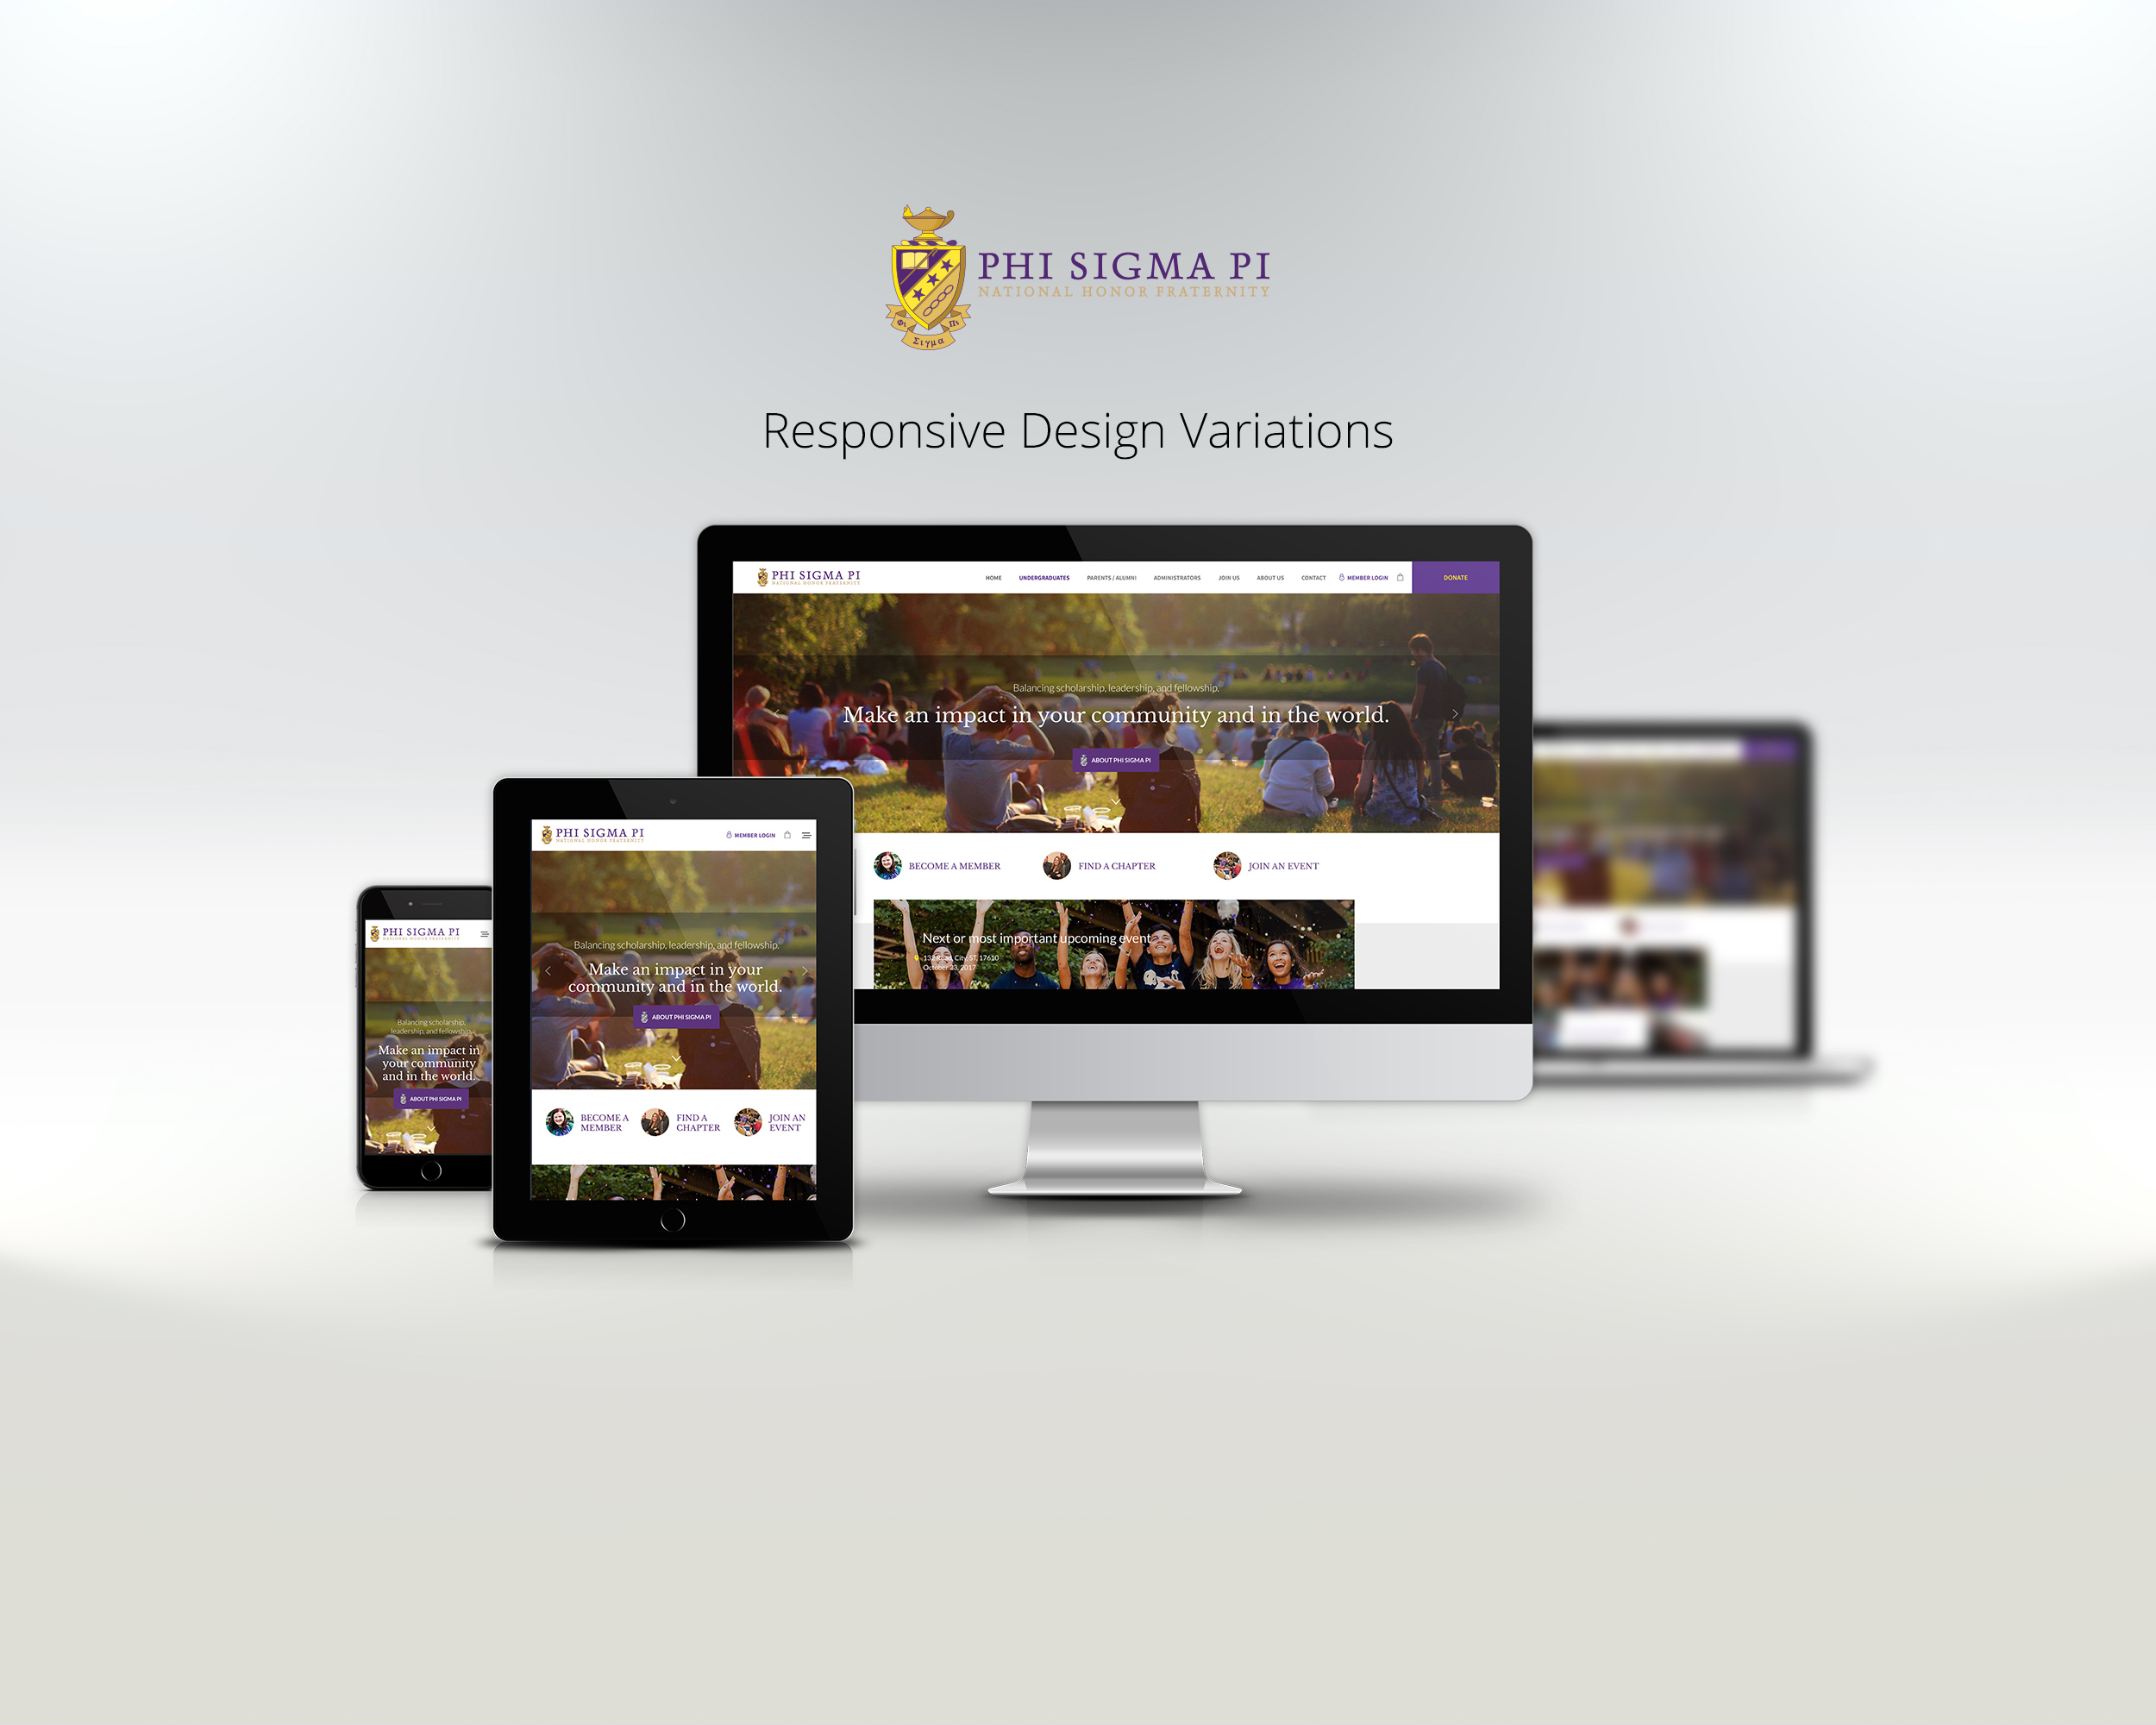 phi sigma pi website displayed on laptop, tablet, and phone